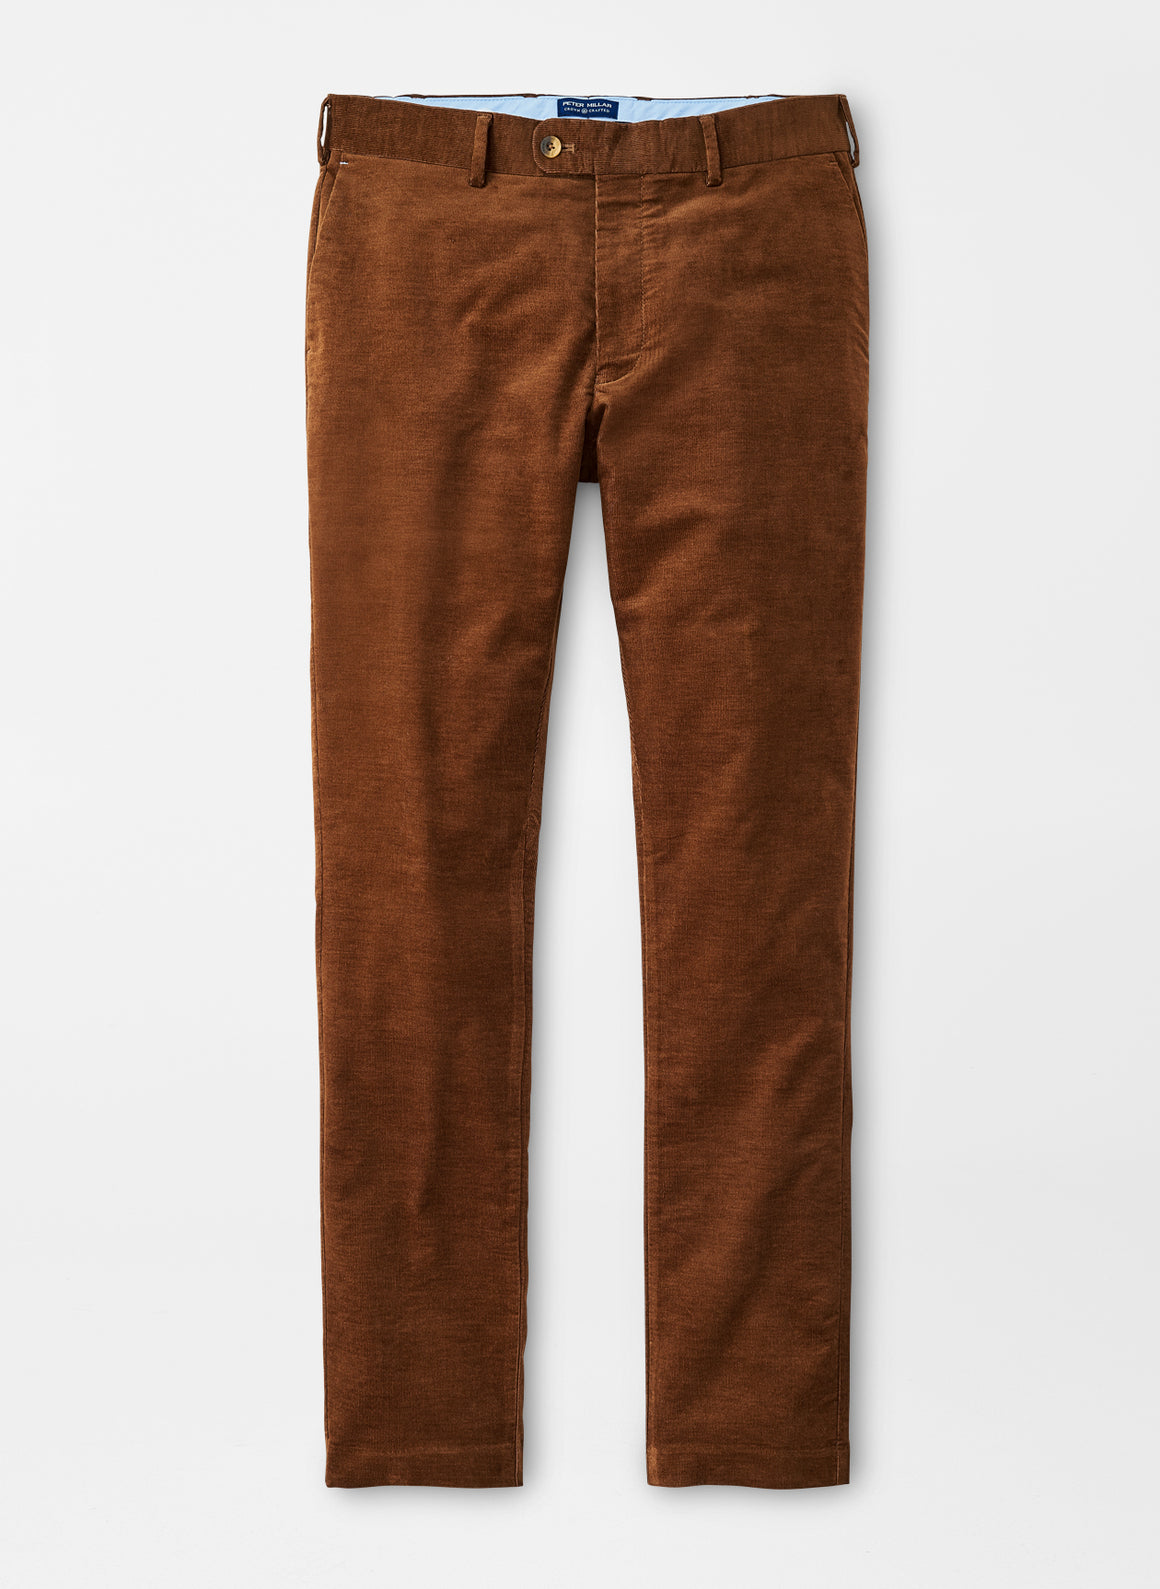 Crisman Performance Corduroy Trouser